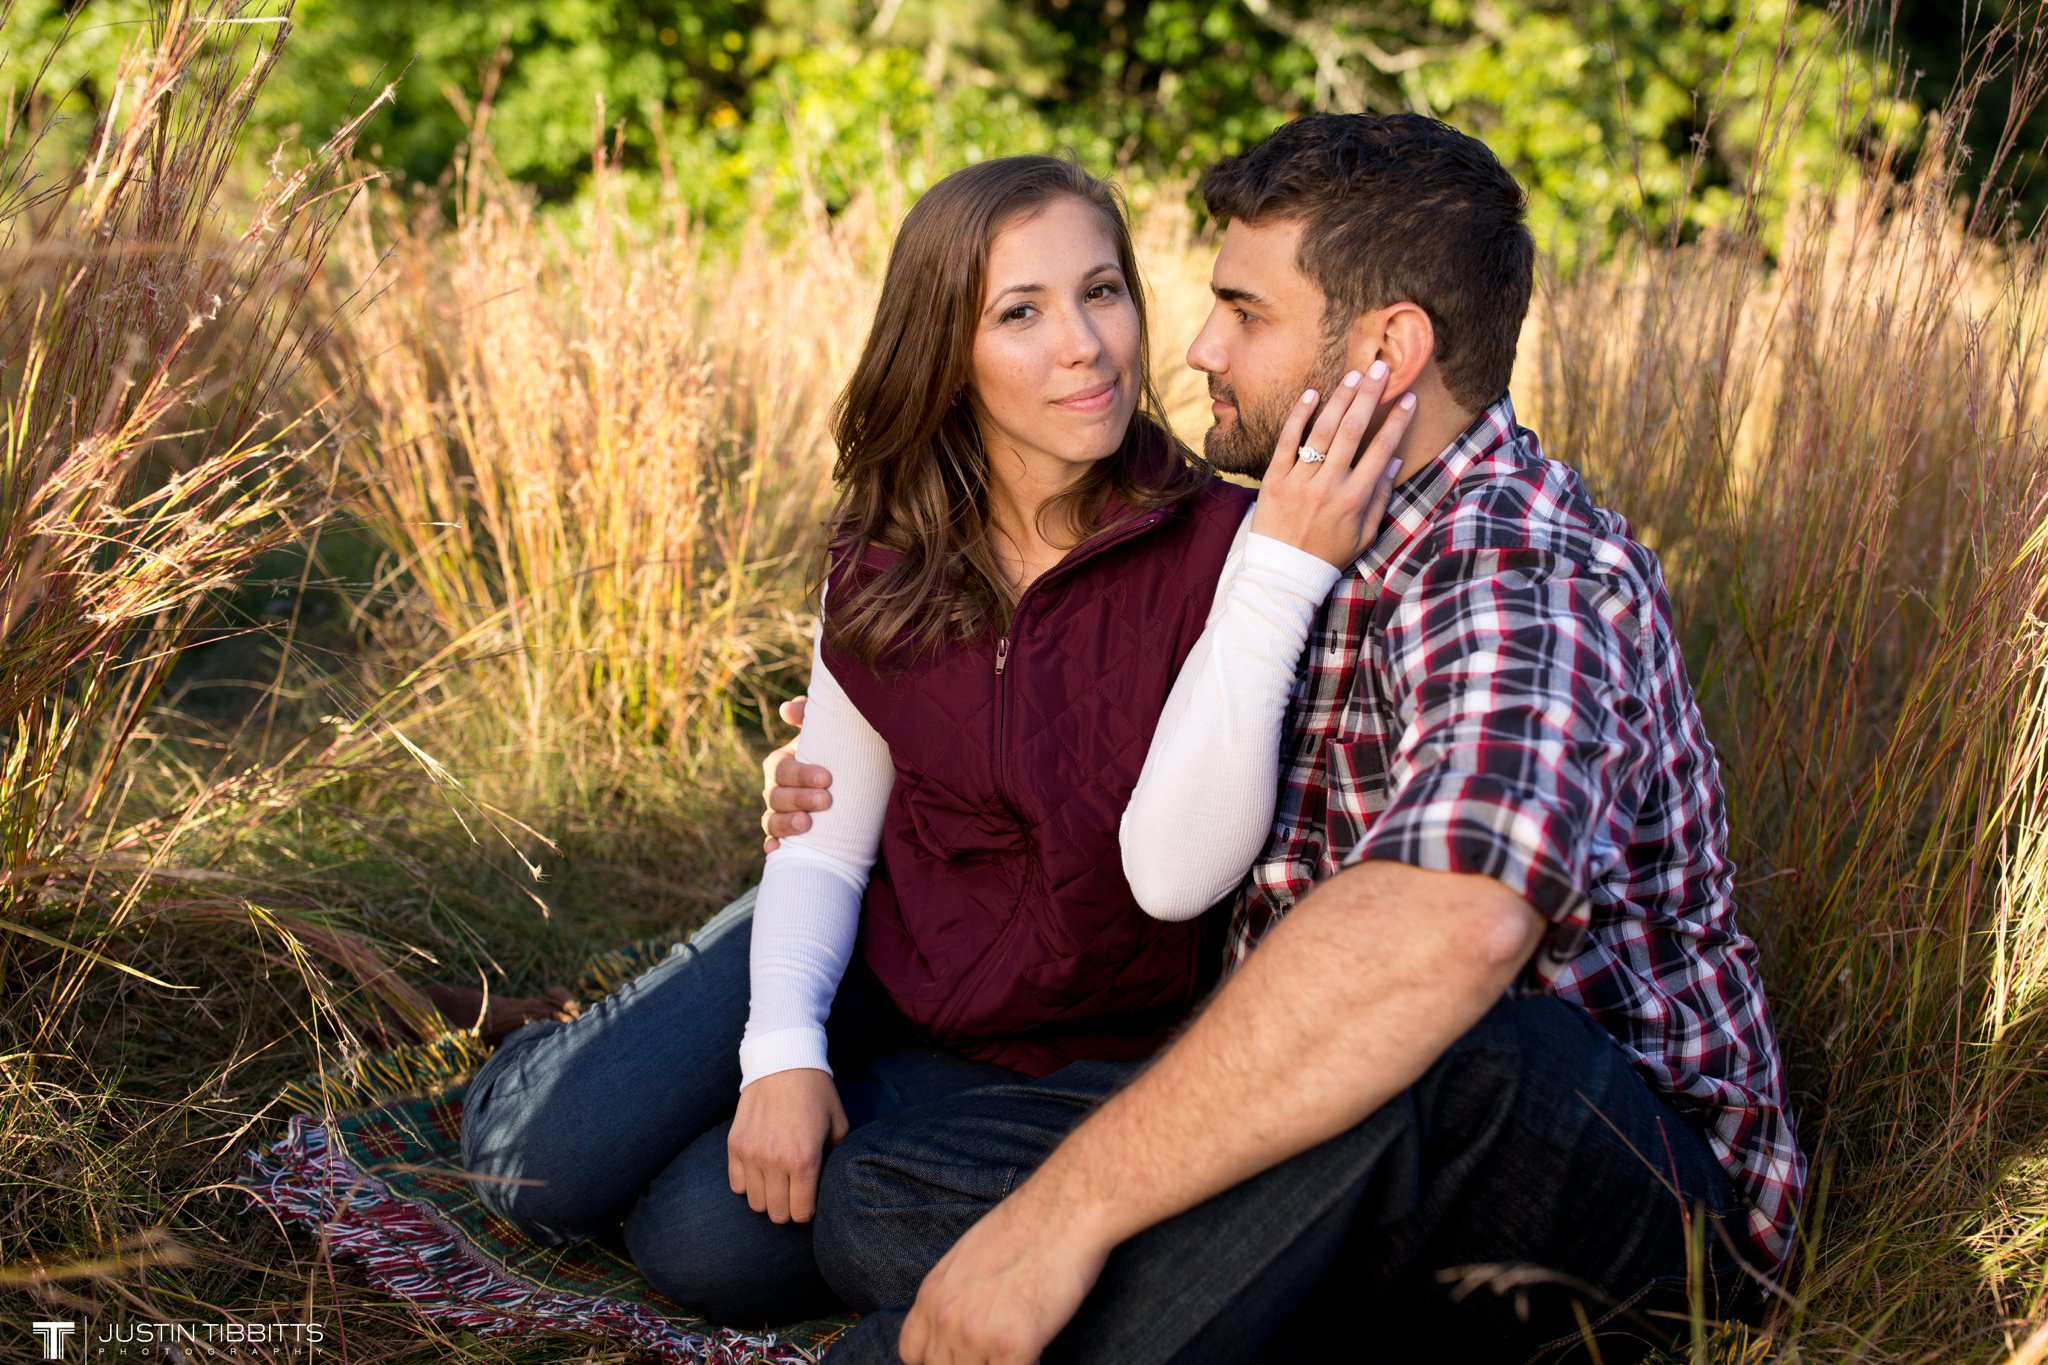 saratoga-springs-ny-engagement-shoot-with-nick-and-ciara_0024